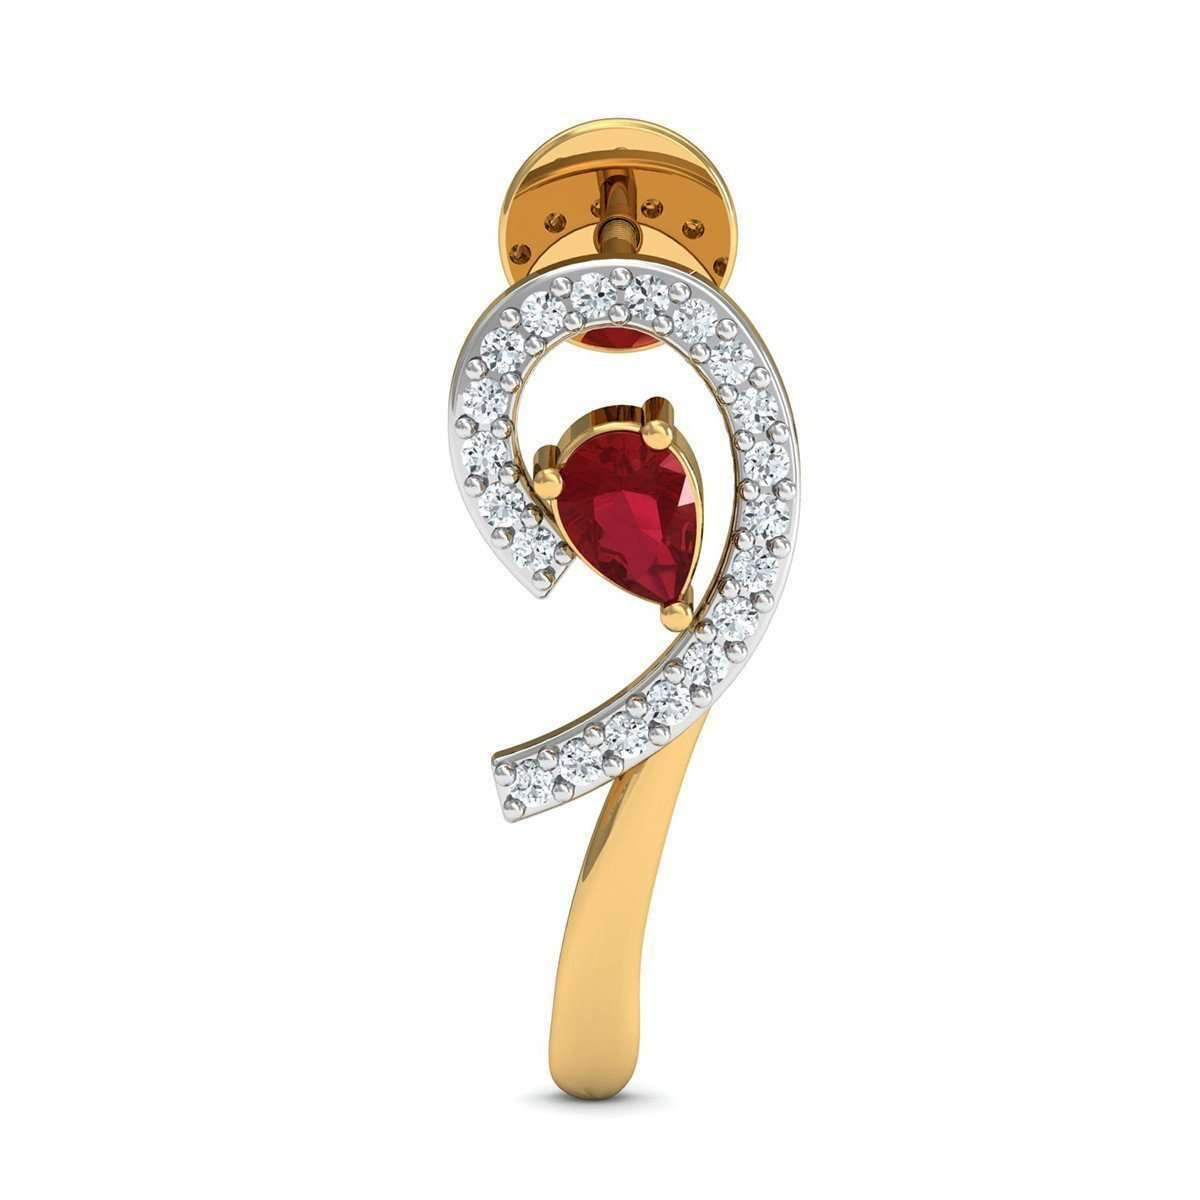 Diamoire Jewels Nature Inspired 18kt Yellow Gold and Pear Shaped Ruby Earrings with Premium Diamonds pJGMbO